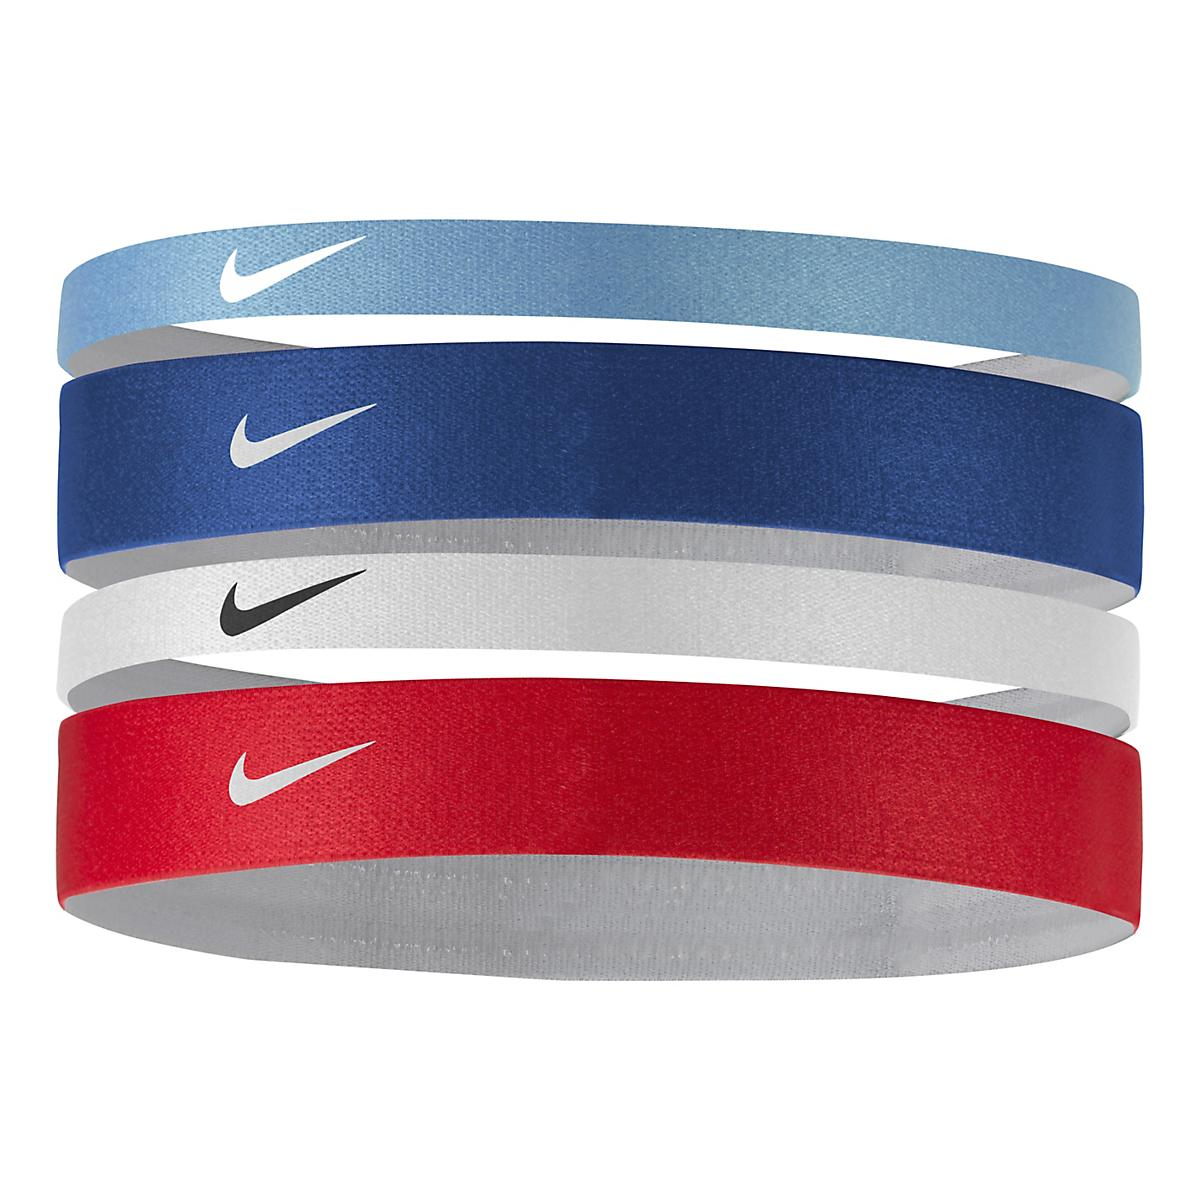 Women's Nike�Printed Headbands Assorted 4-pack